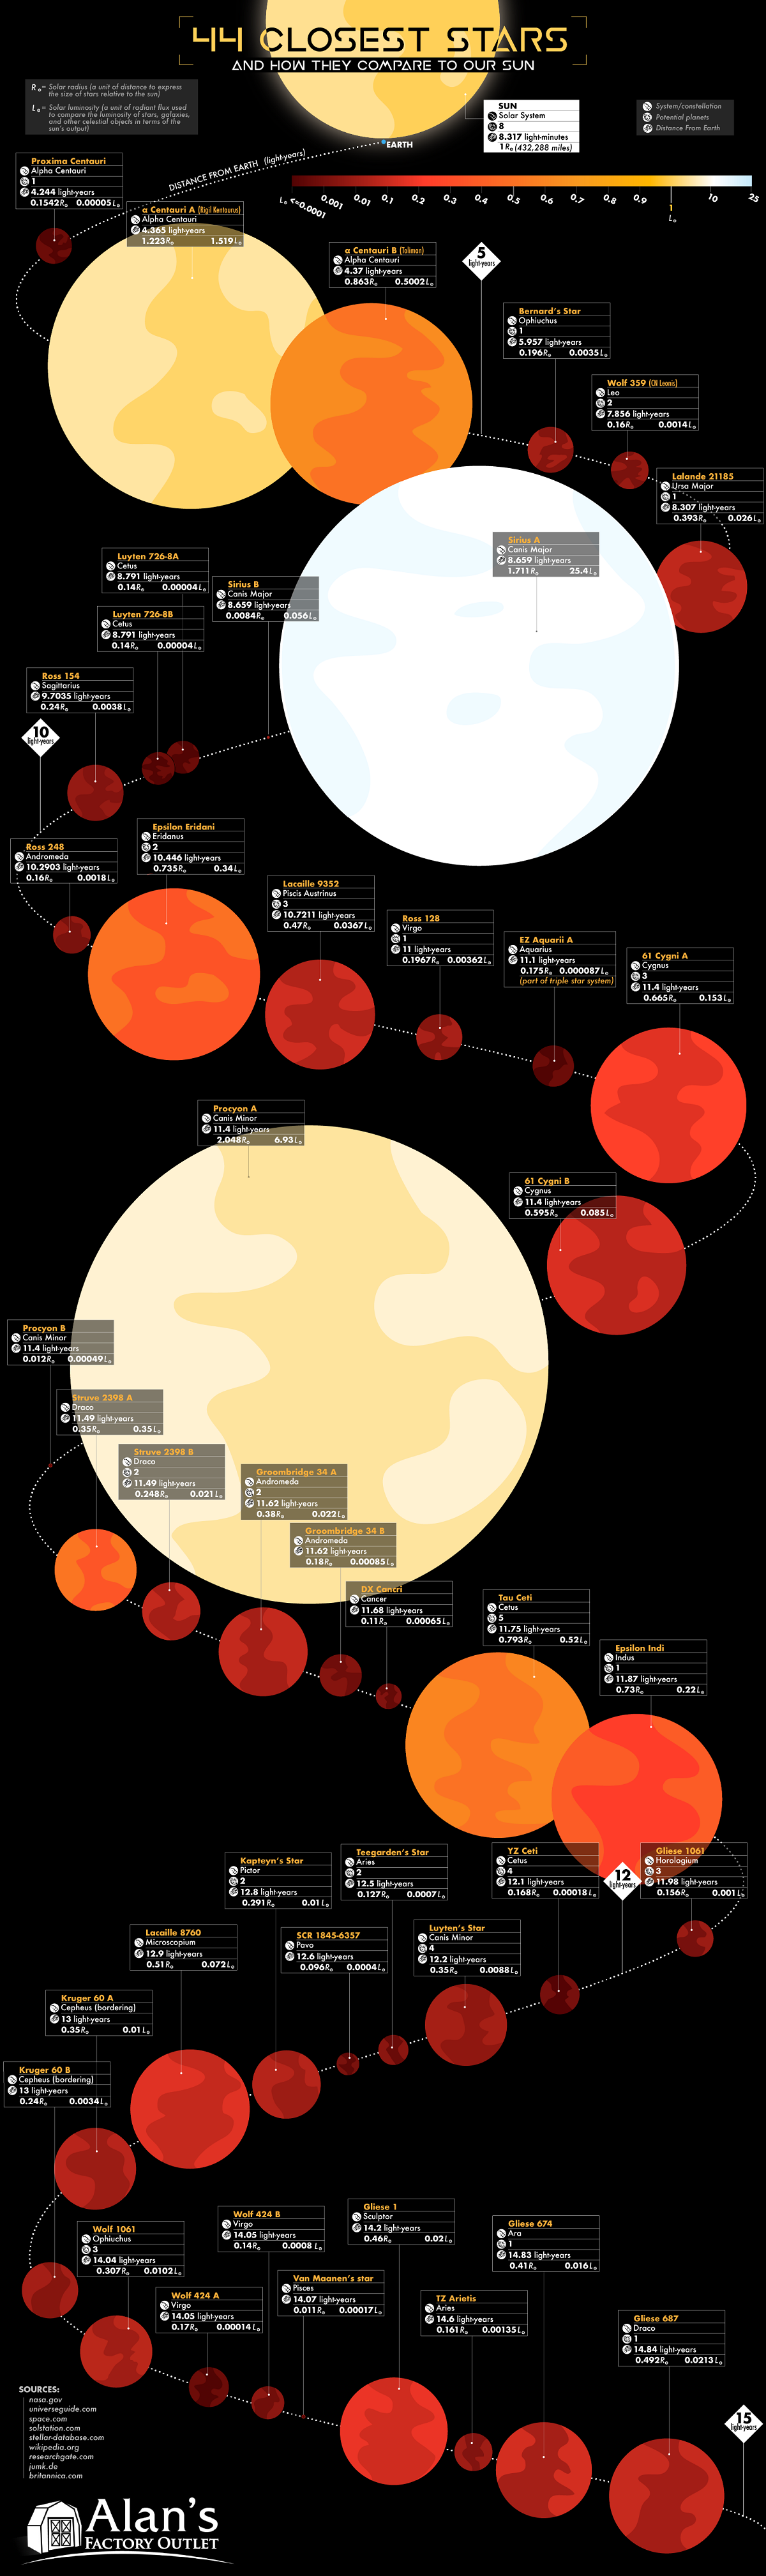 44-closest-stars-and-how-they-compare-to-our-sun-infographic